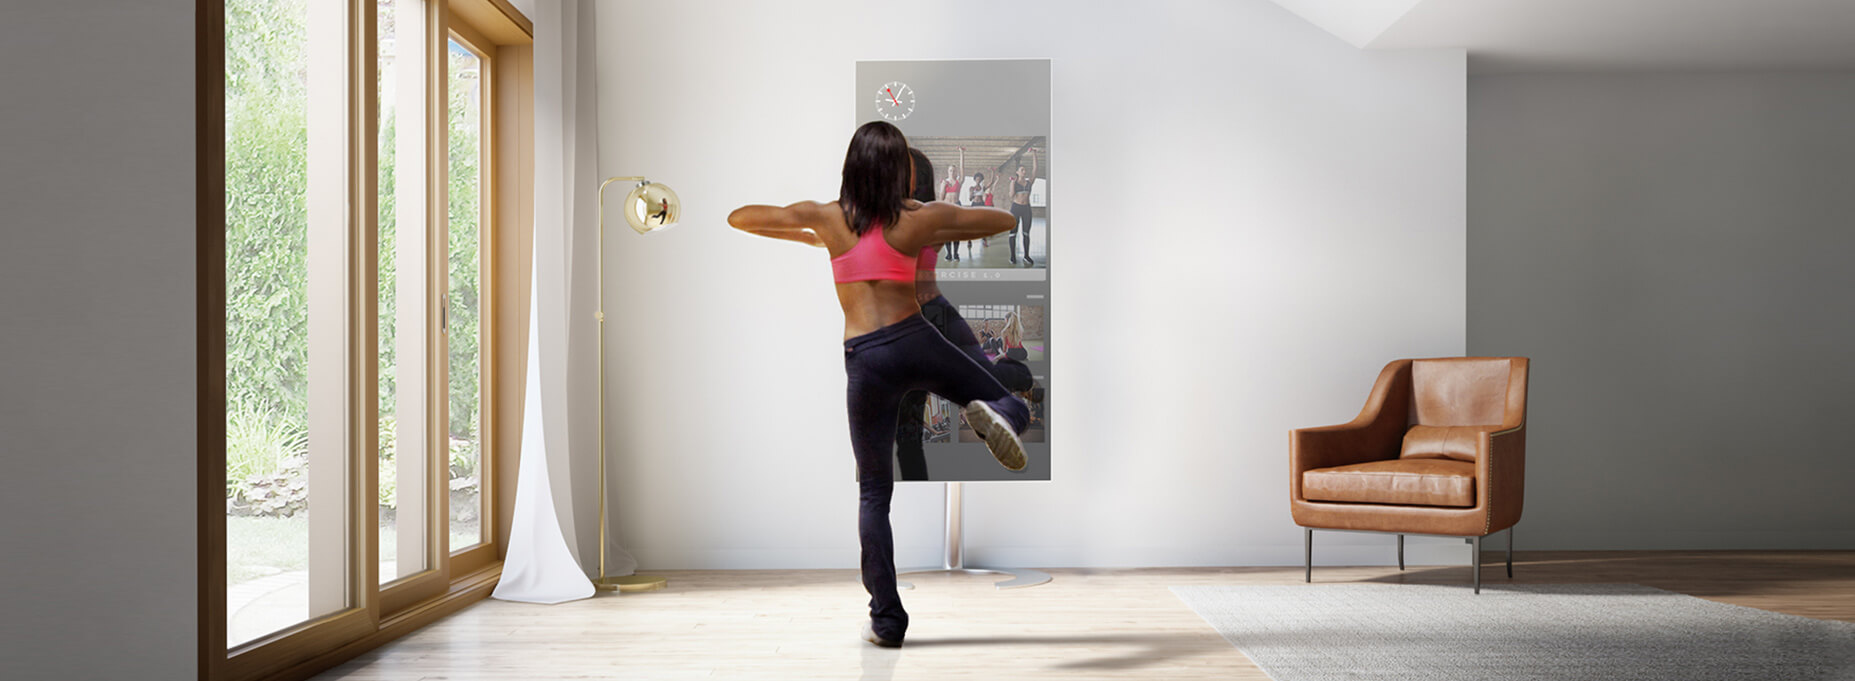 Home workout mirror TV helps achieve your body goals in a move convenient way.